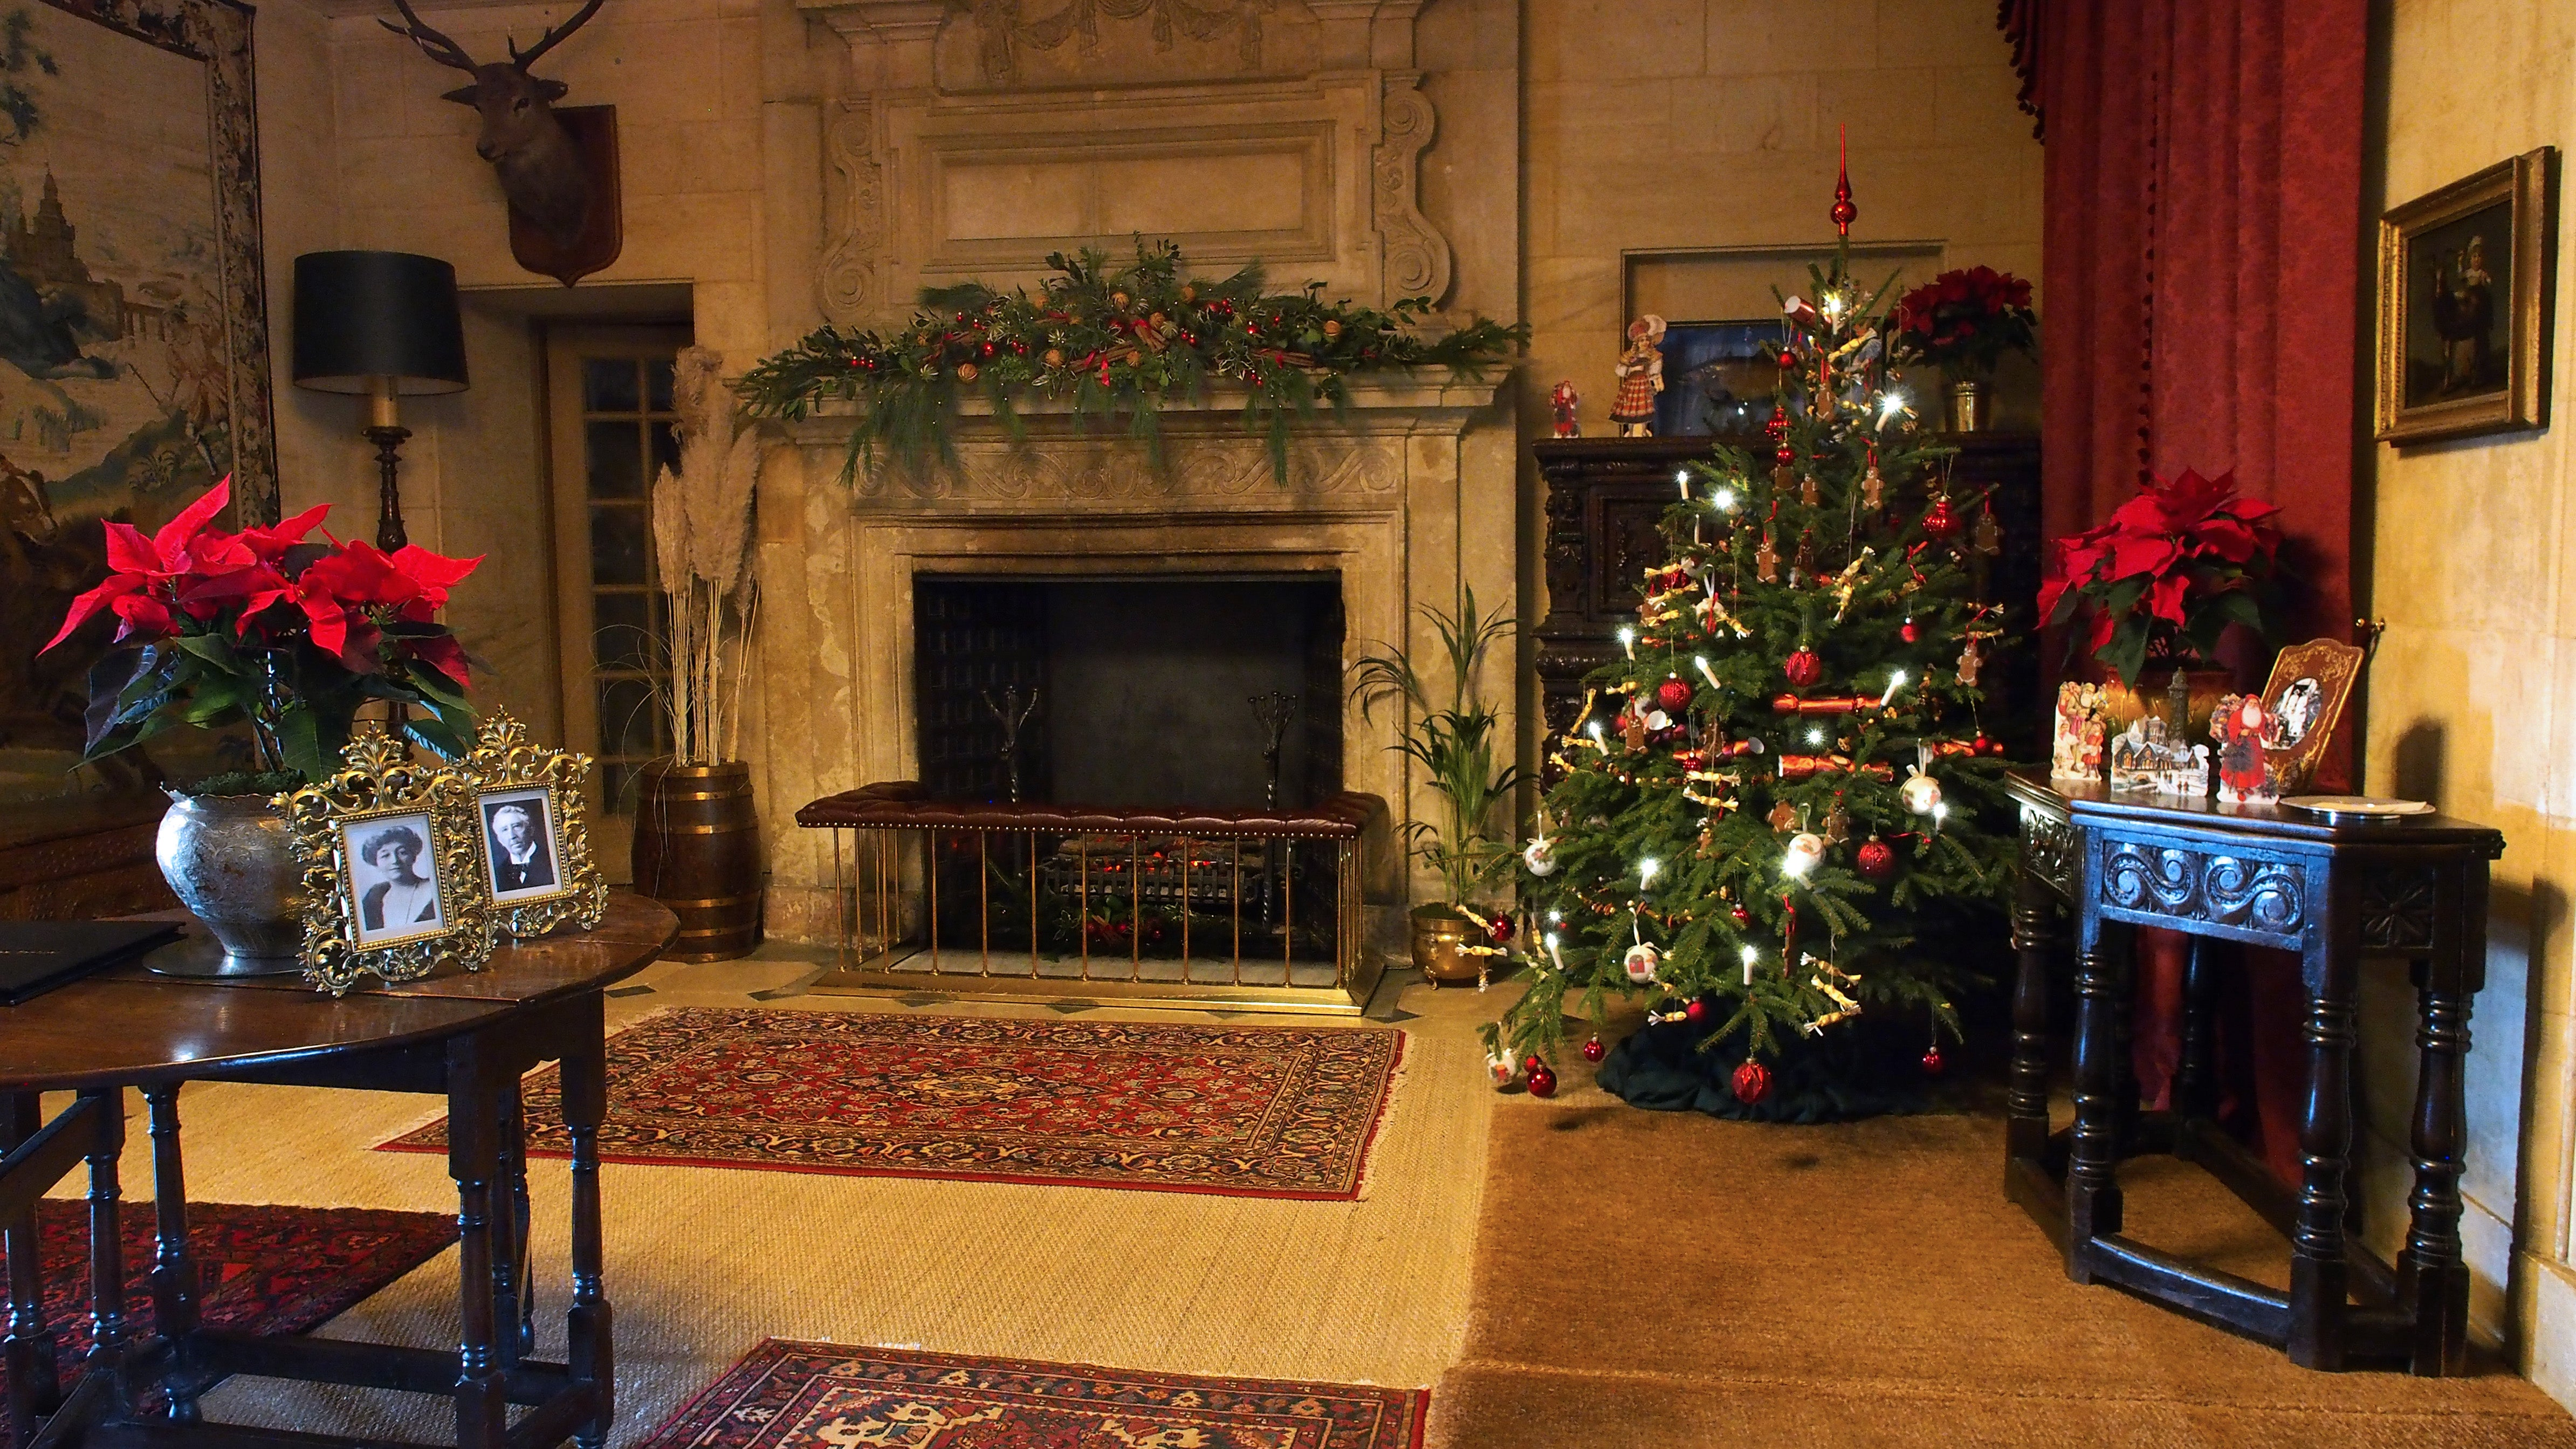 Christmas tree and decorated fireplace and table